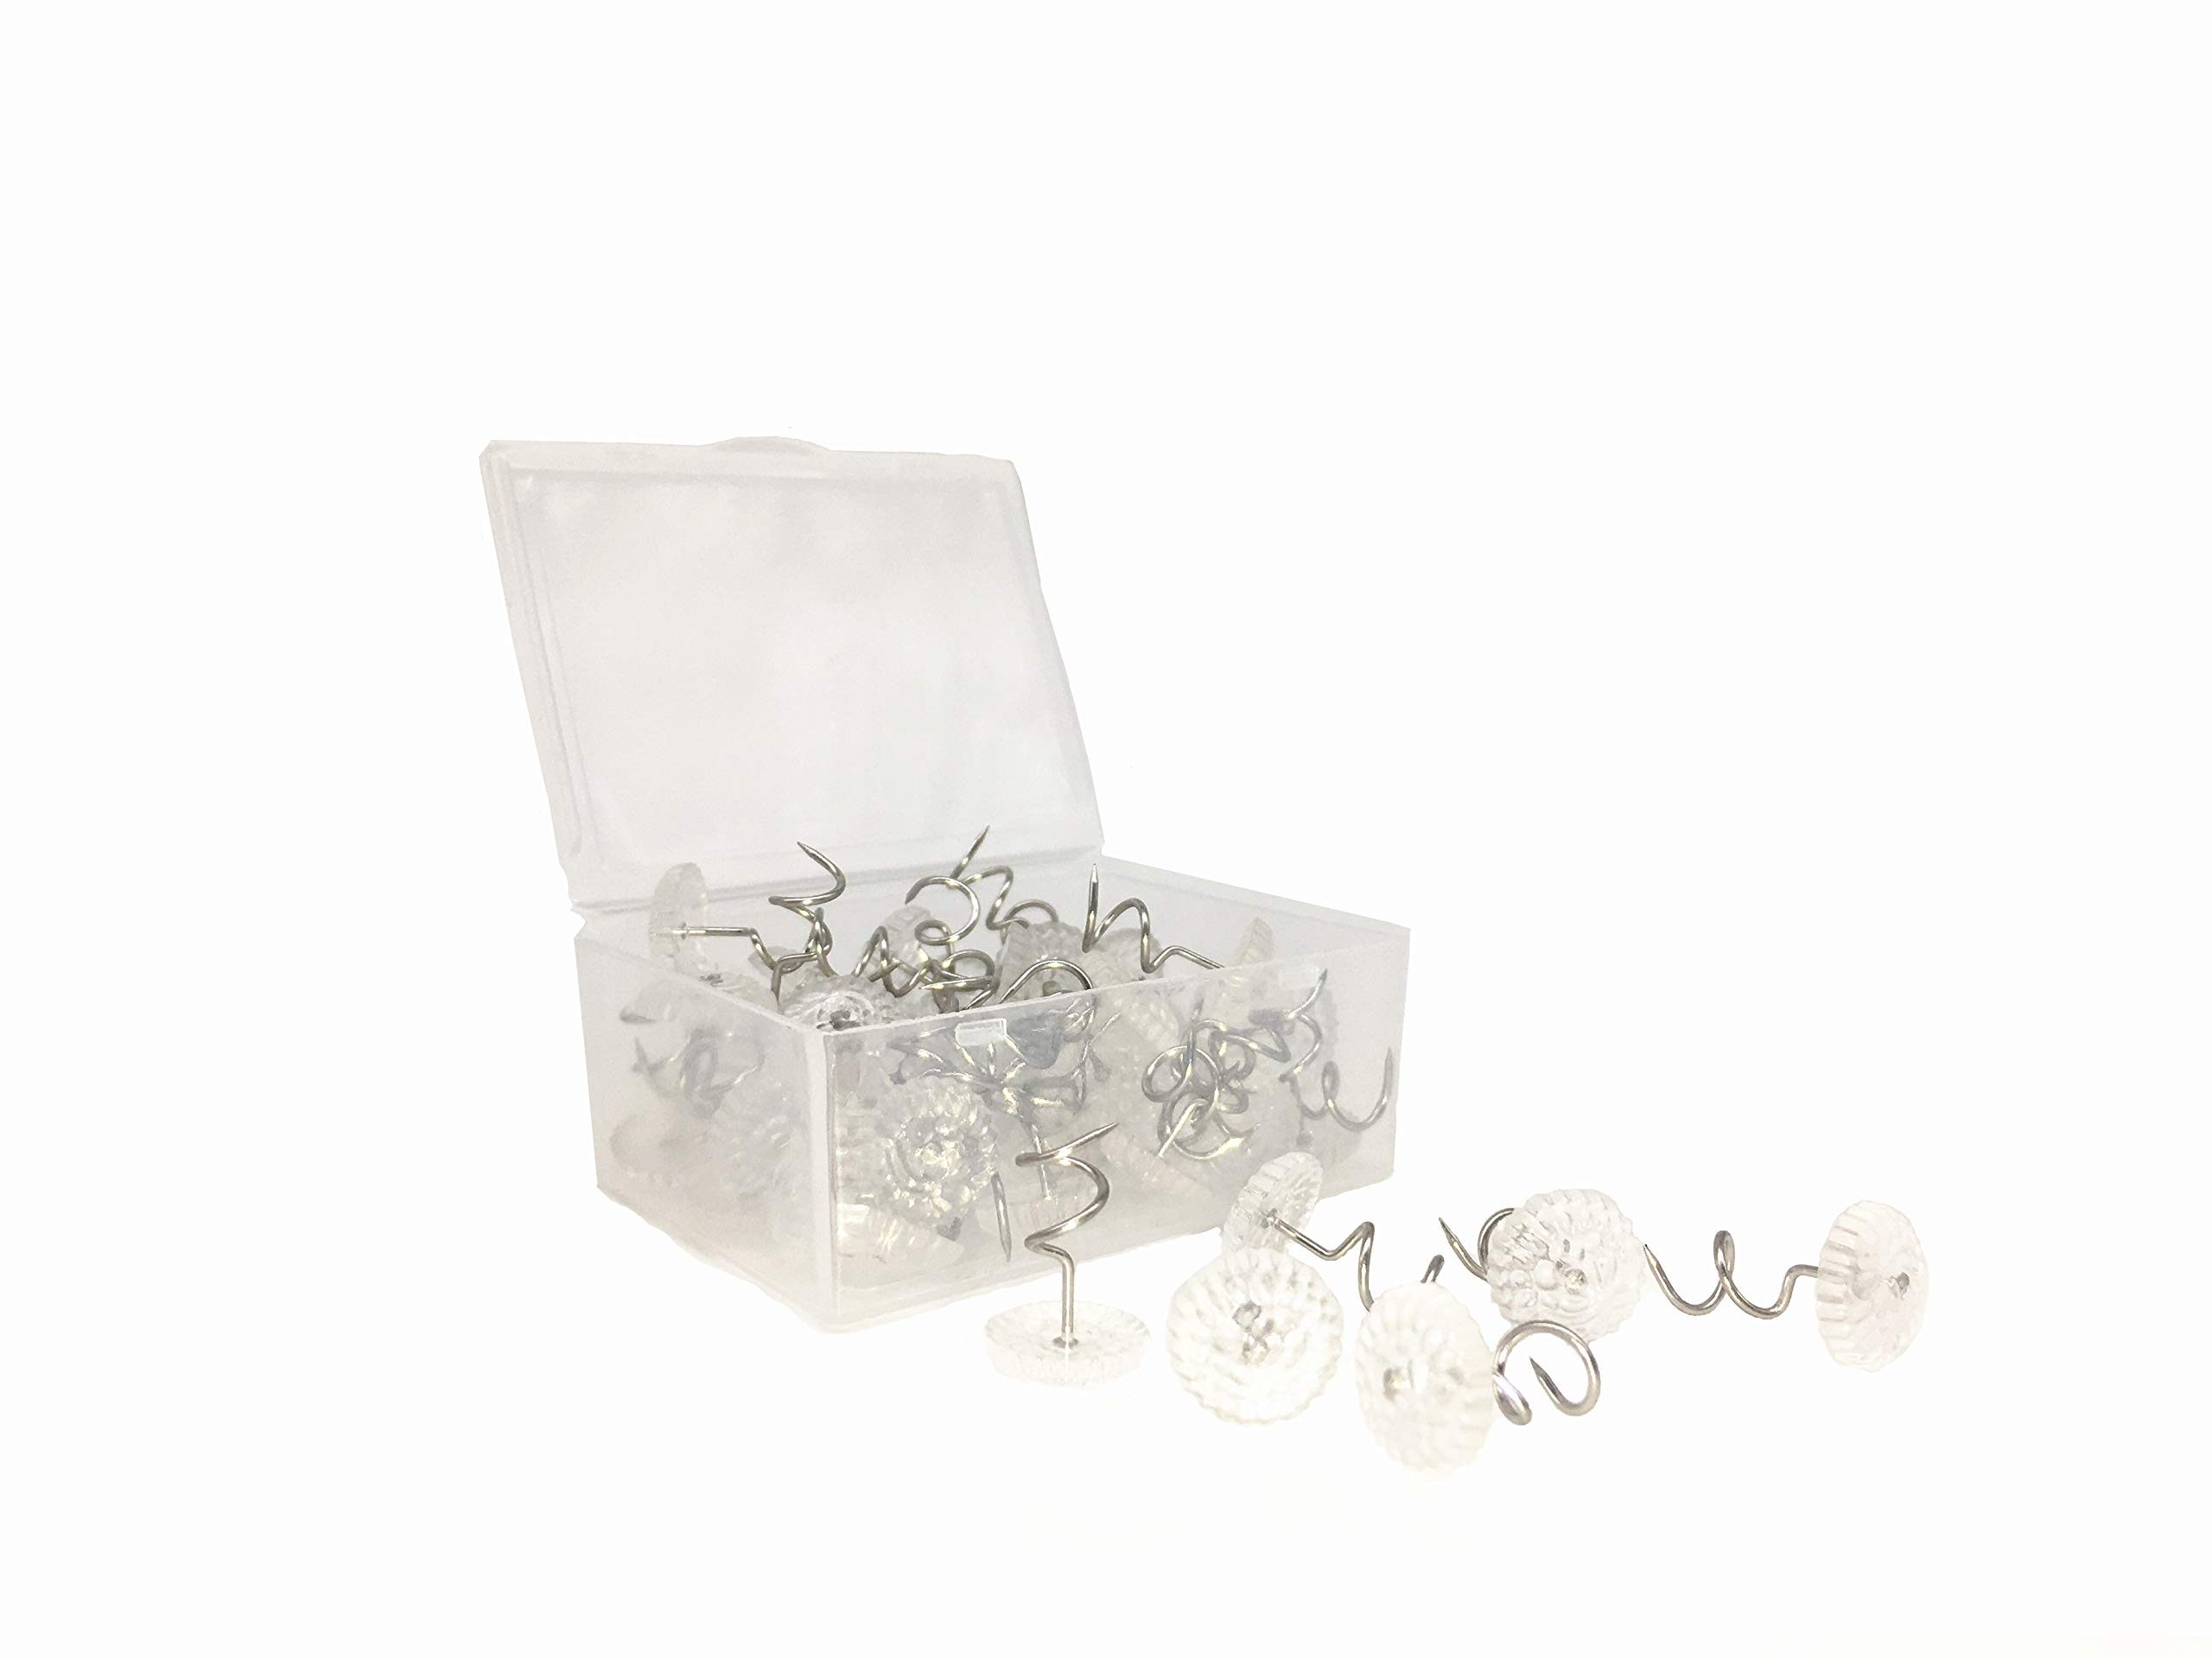 Powerful 50 Pcs Clear Heads Bed Skirt Twist Pins Push Pins Holds Upholstery Tacks Sofa Cushion Slipcovers And Buy Online In Cayman Islands At Cayman Desertcart Com Productid 81281164